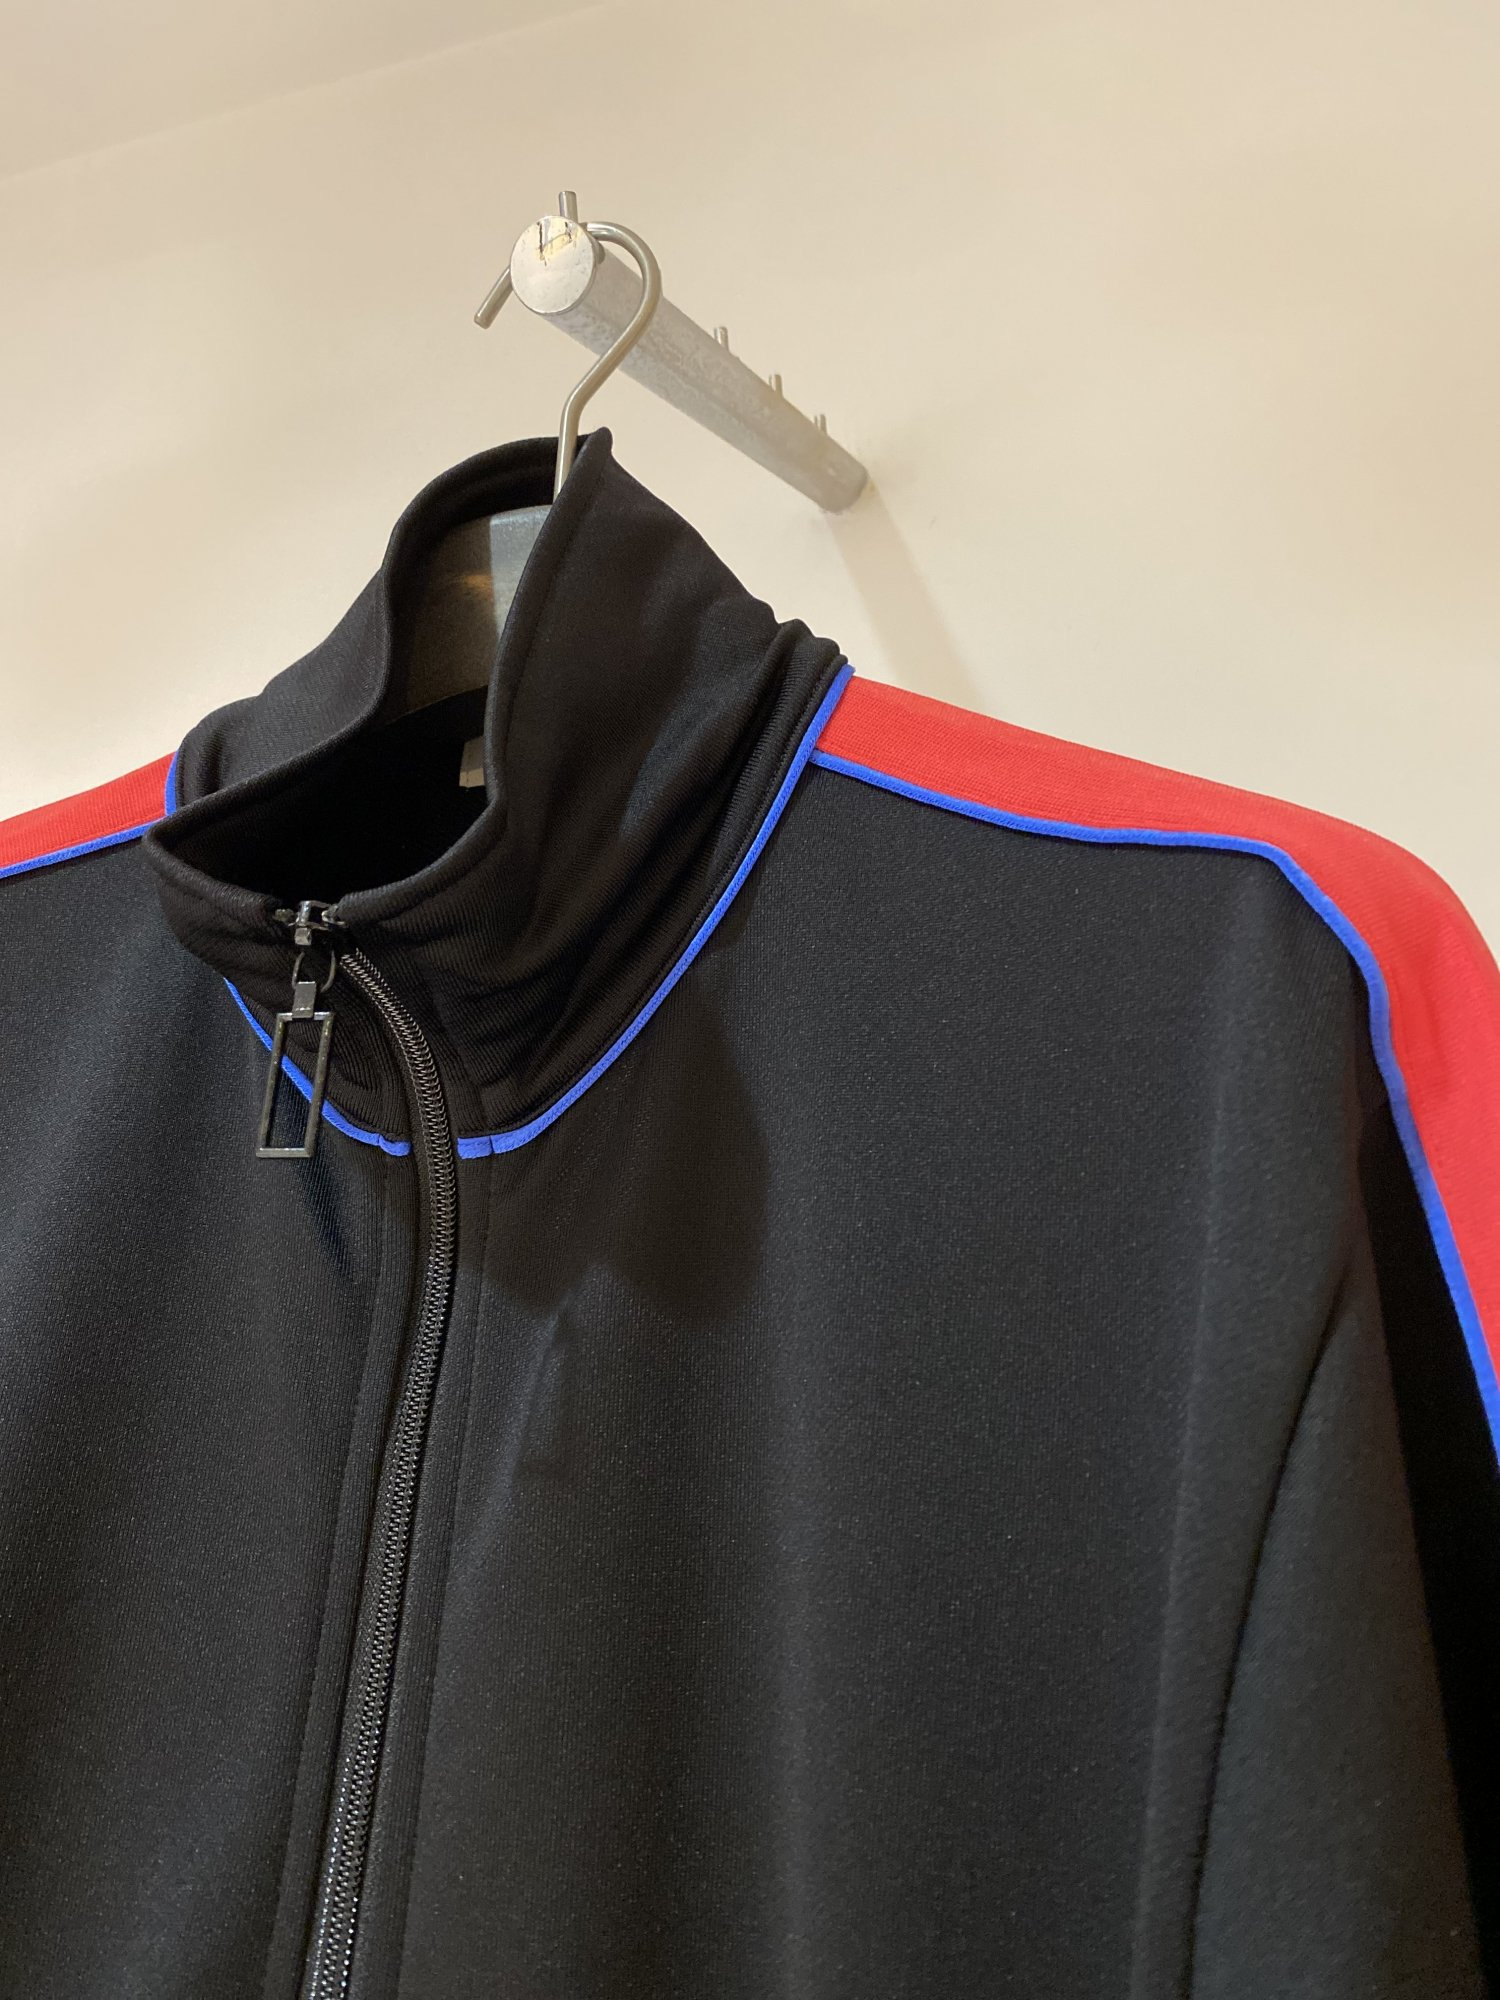 LITTLEBIG<br />Track Top / Black<img class='new_mark_img2' src='https://img.shop-pro.jp/img/new/icons14.gif' style='border:none;display:inline;margin:0px;padding:0px;width:auto;' />